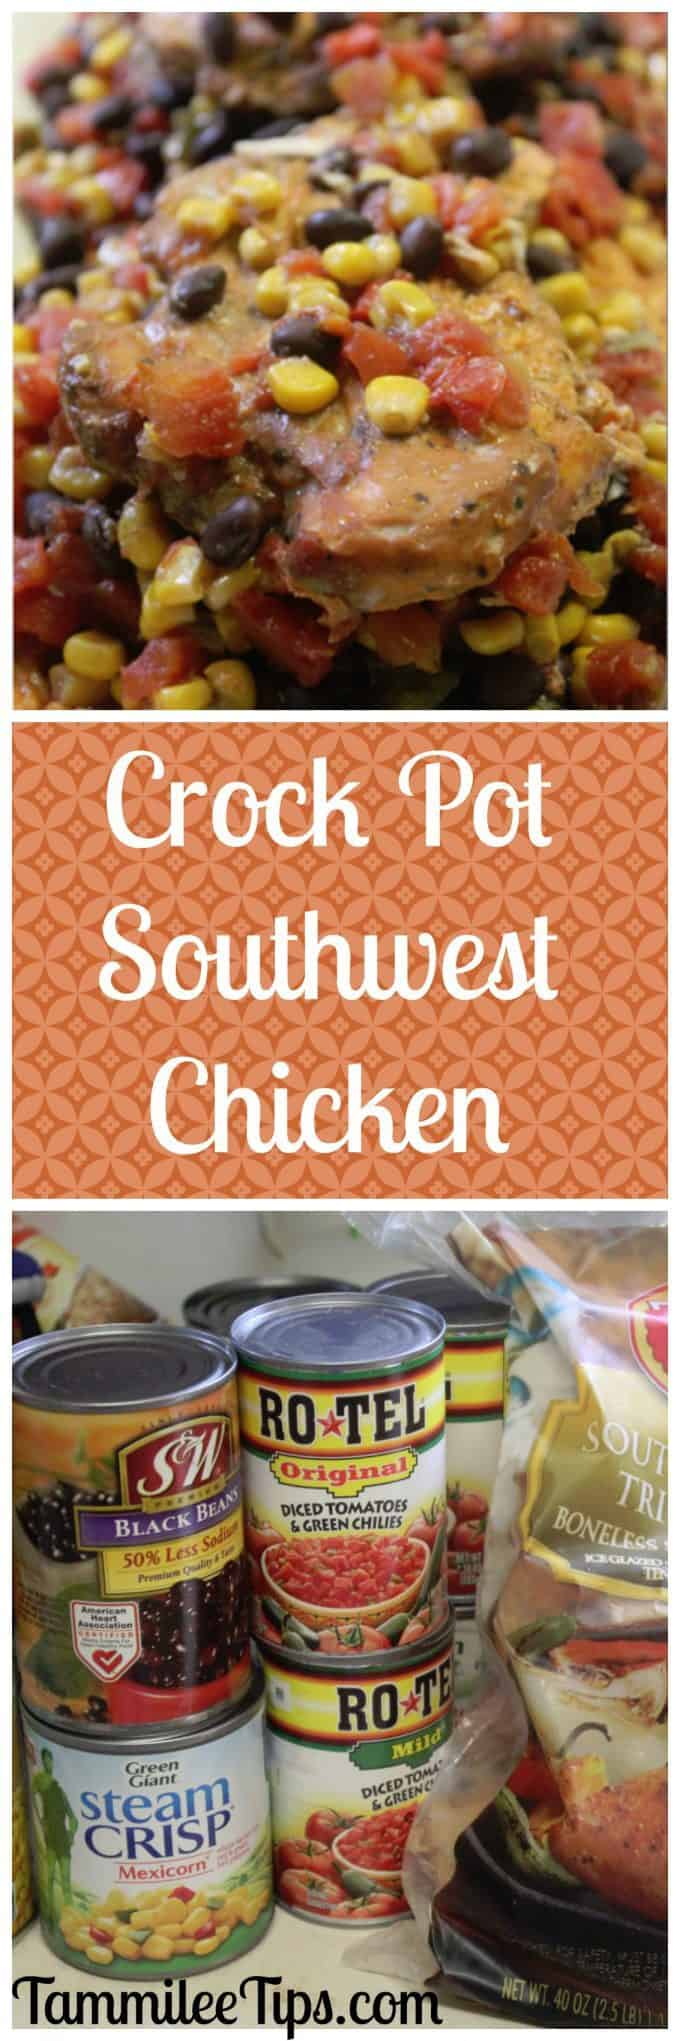 Crock Pot Southwest Chicken Recipe! This slow cooker chicken recipe can be as spicy as you would like it! So easy to make it is the perfect dinner recipe.